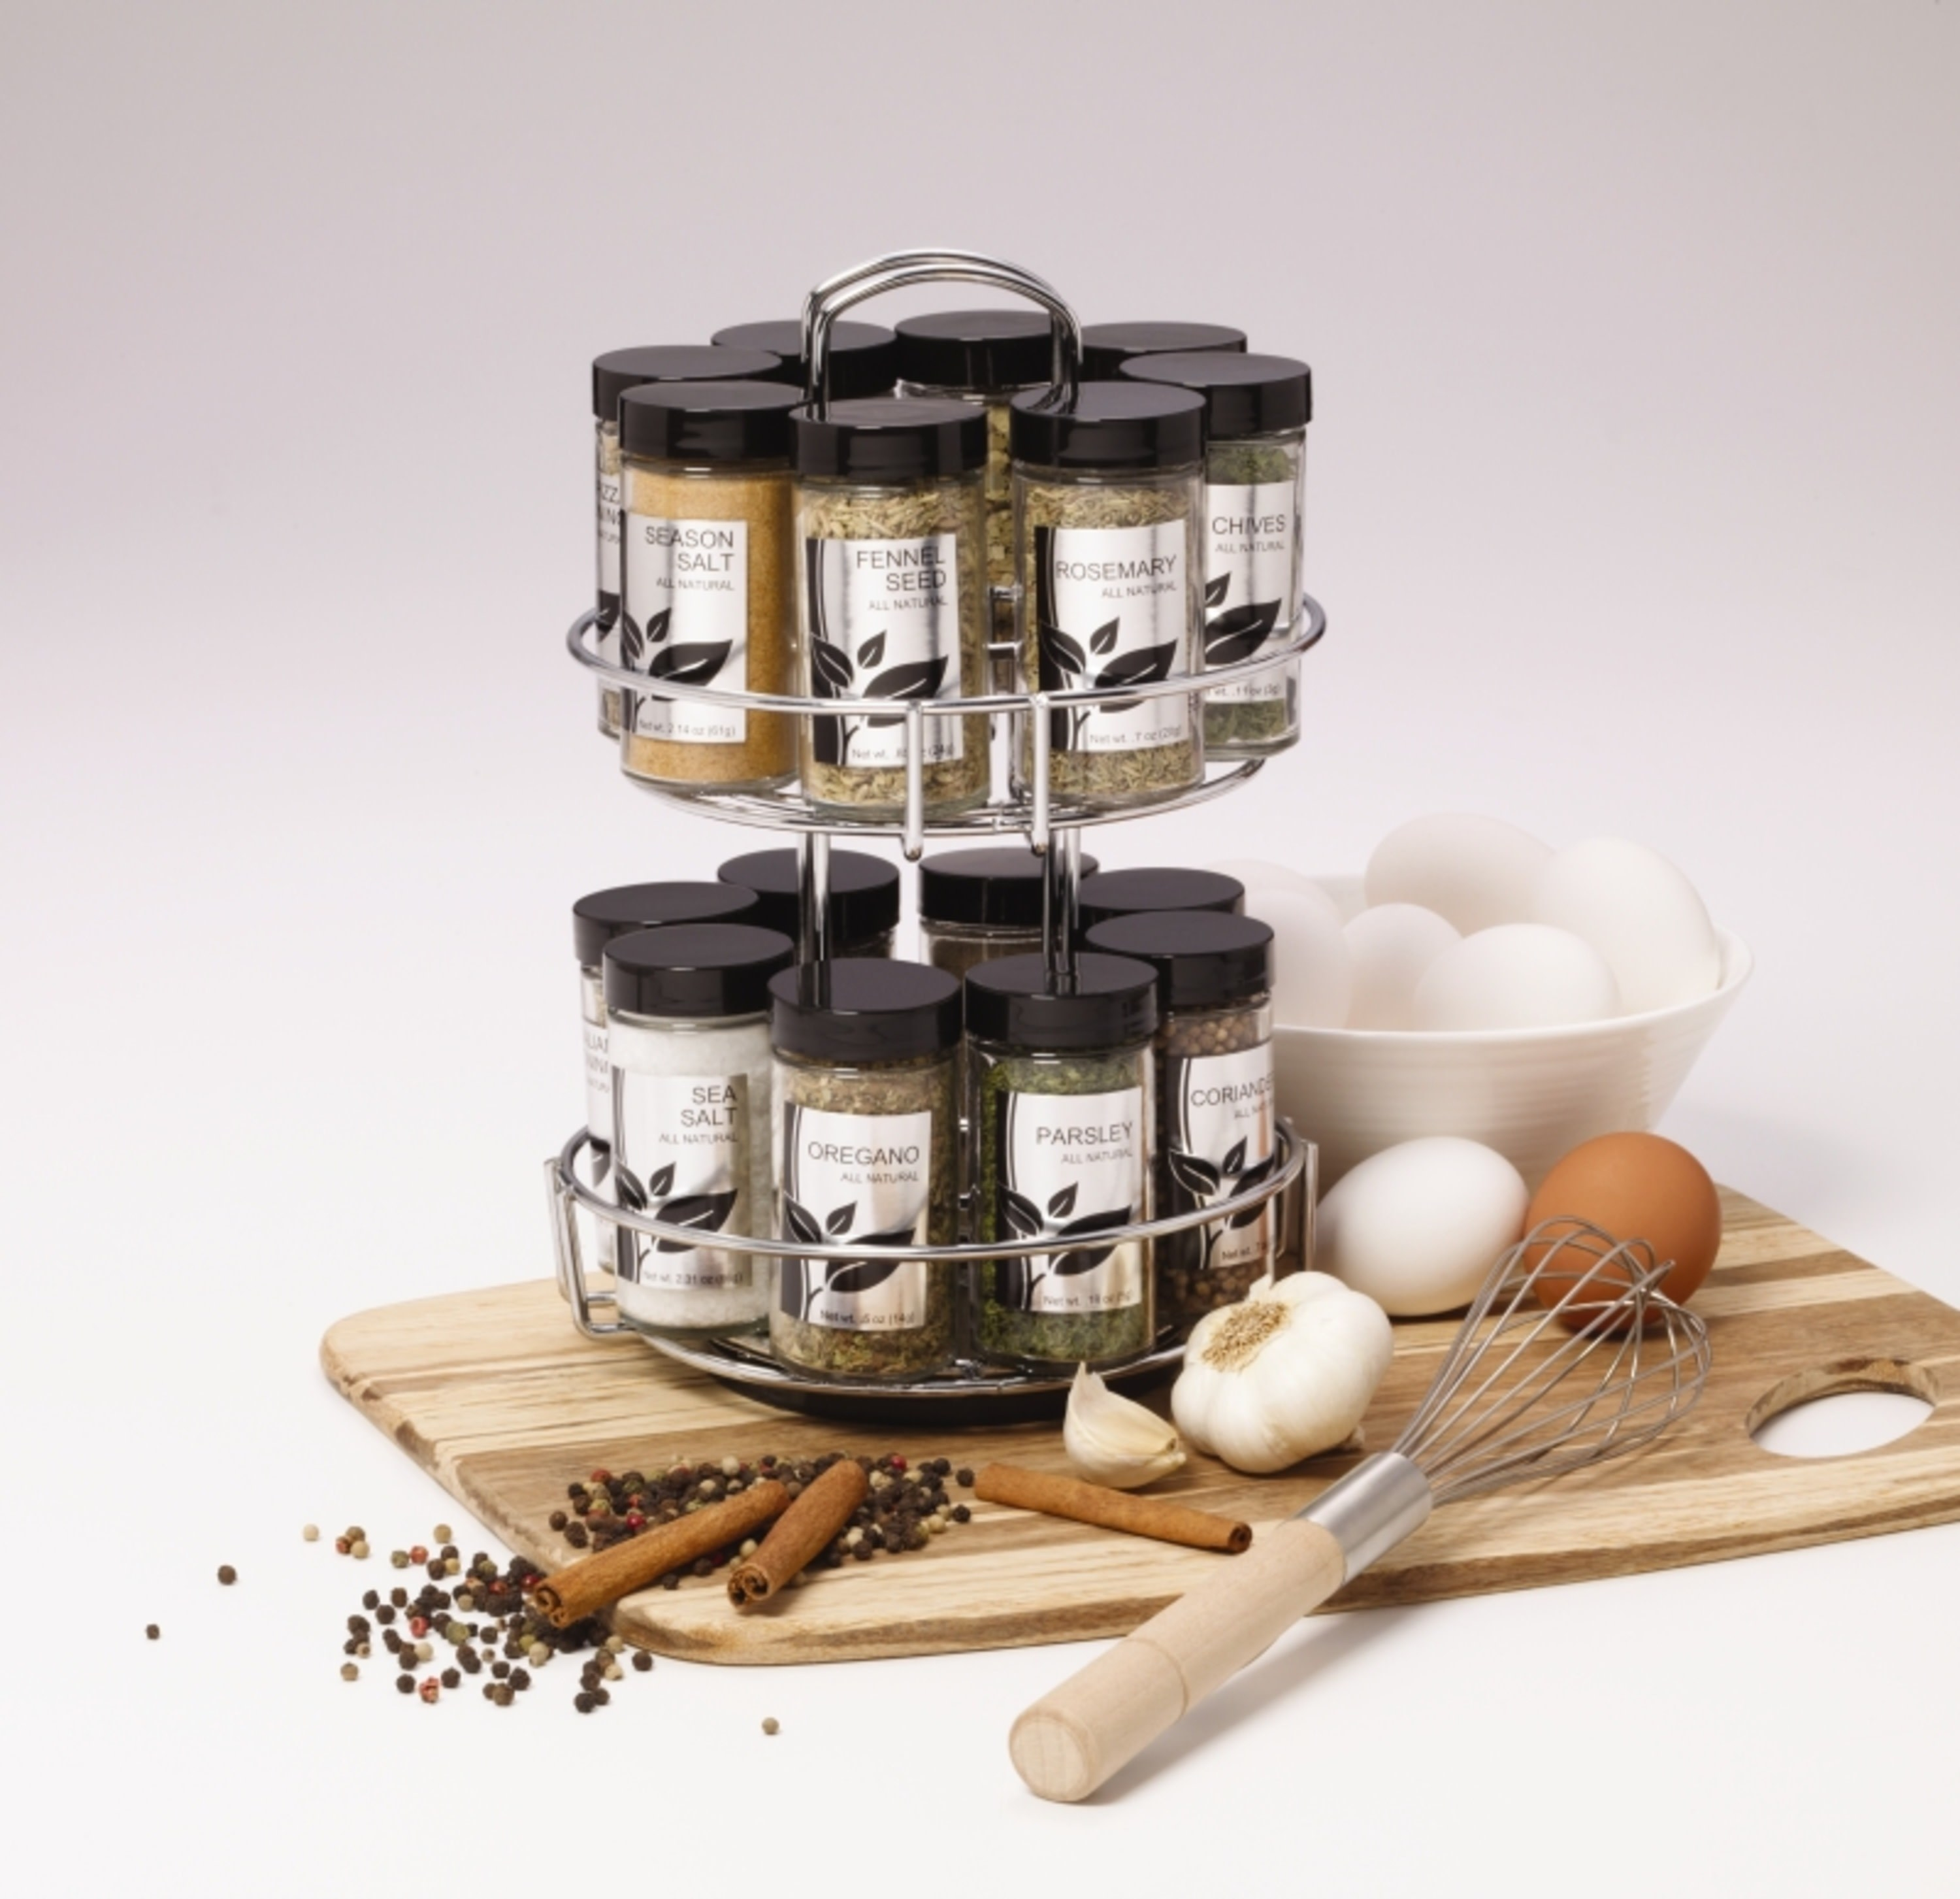 two-tier stainless steel spice rack with jars of spices, sitting on a cutting board with ingredients